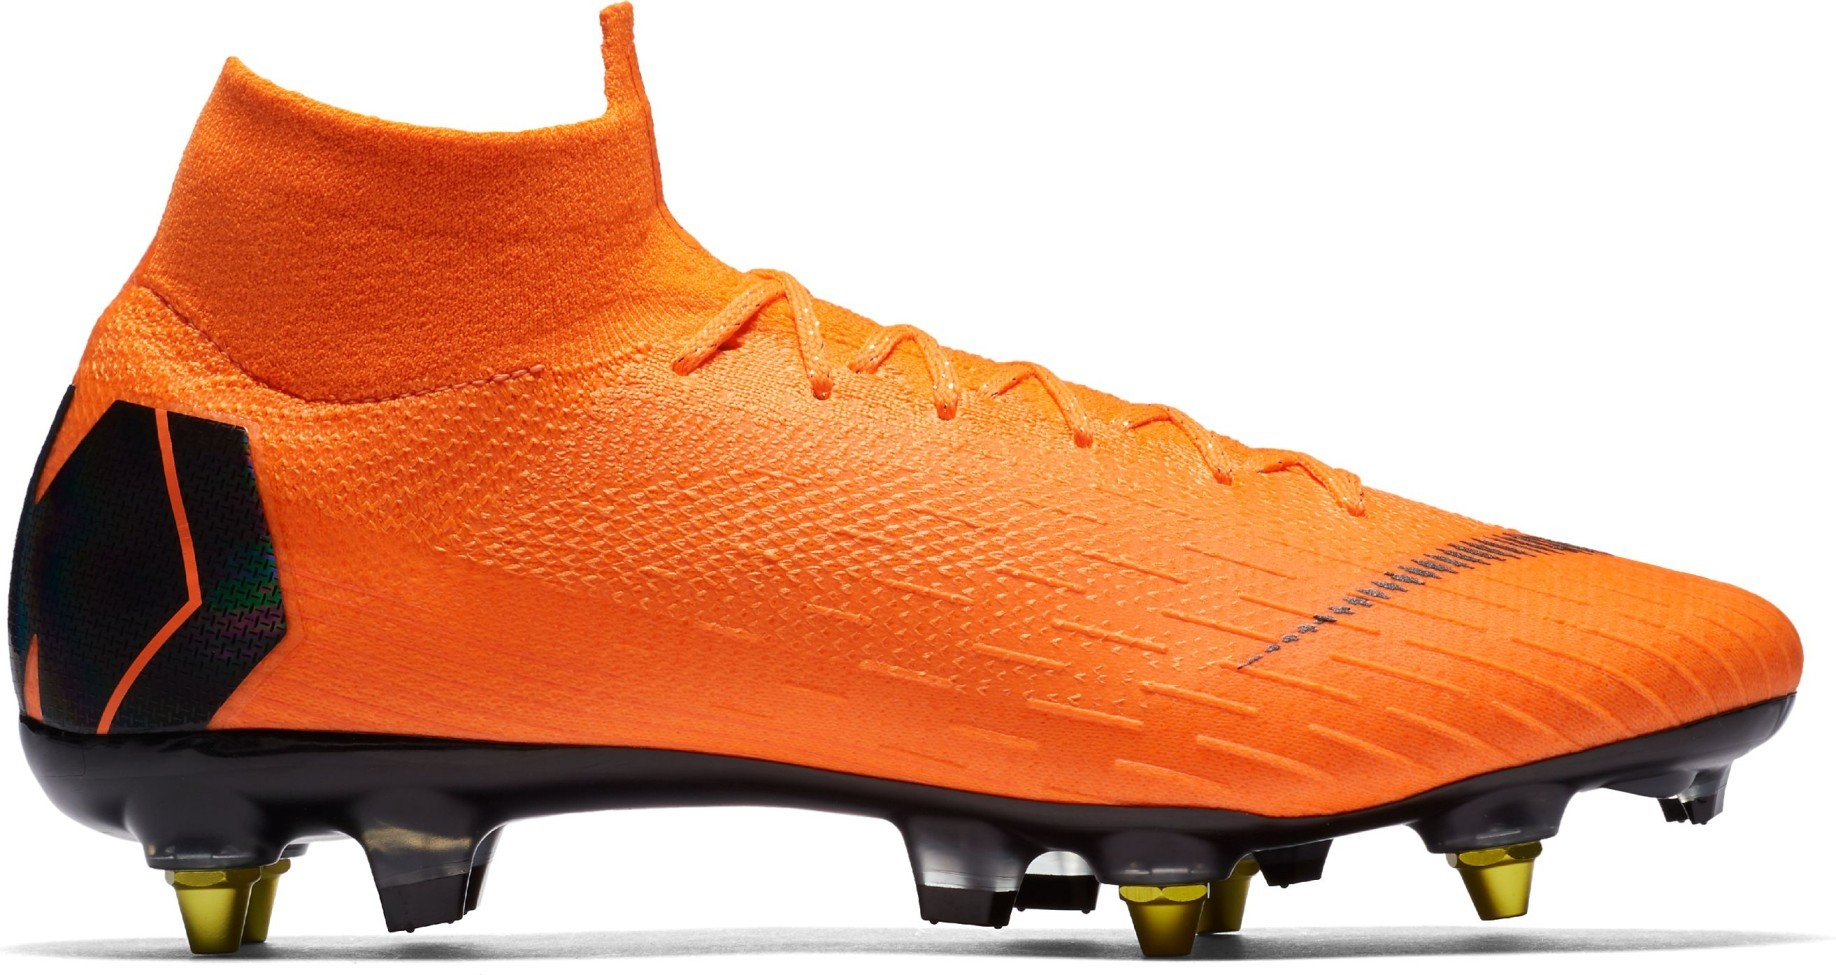 promo code aa142 8f5cd Soccer shoes Nike Mercurial Superfly VI Elite SG Pro